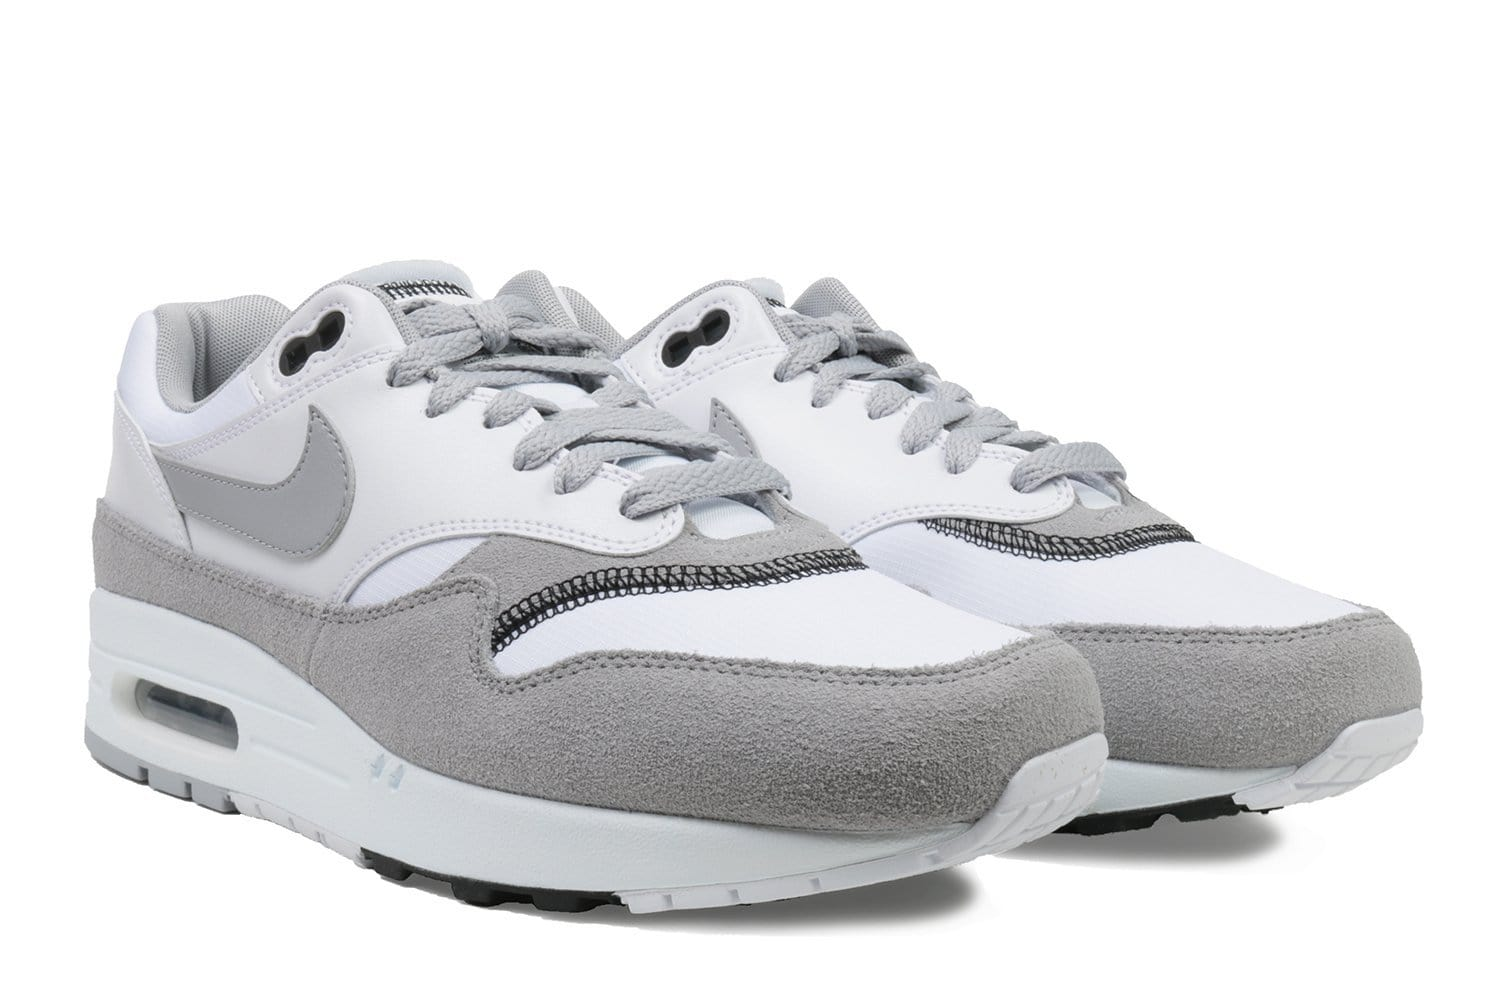 outlet on sale arriving best sell AIR MAX 1 - AH8145-113